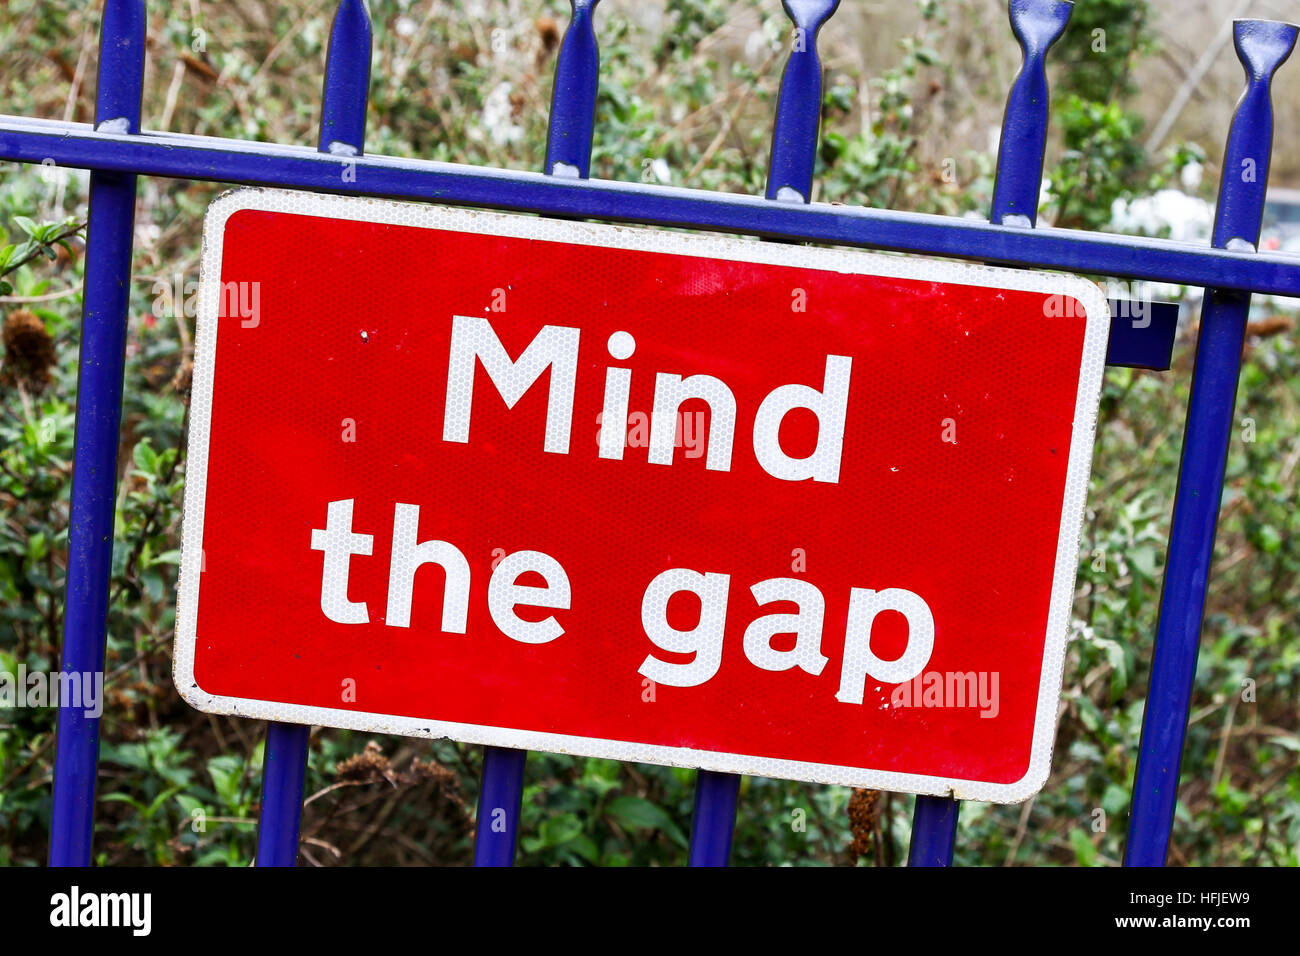 A red warning sign saying 'Mind the gap' - Stock Image